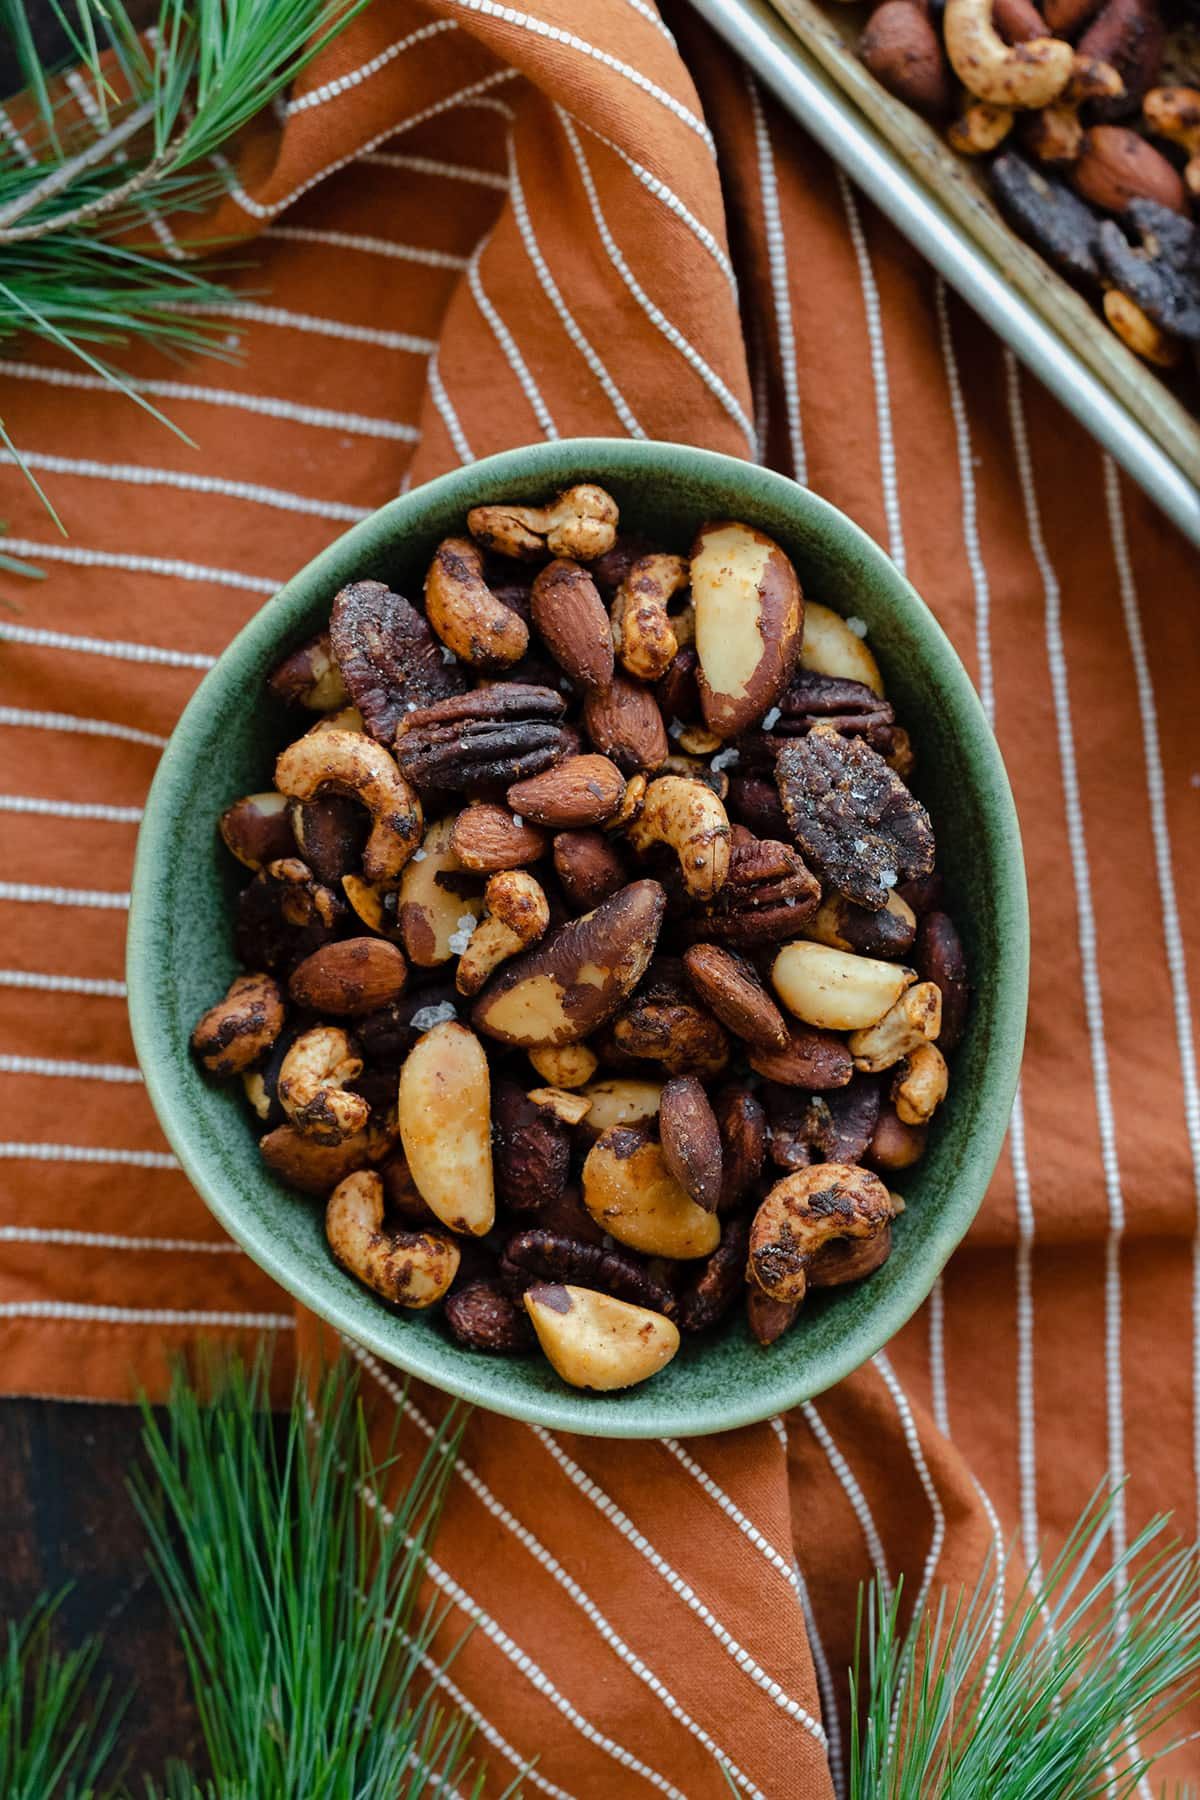 Mixed roasted nuts in a green bowl on an orange and white striped napkin. Pine needles peeking into the shot in the top left, bottom left, and bottom right corners.